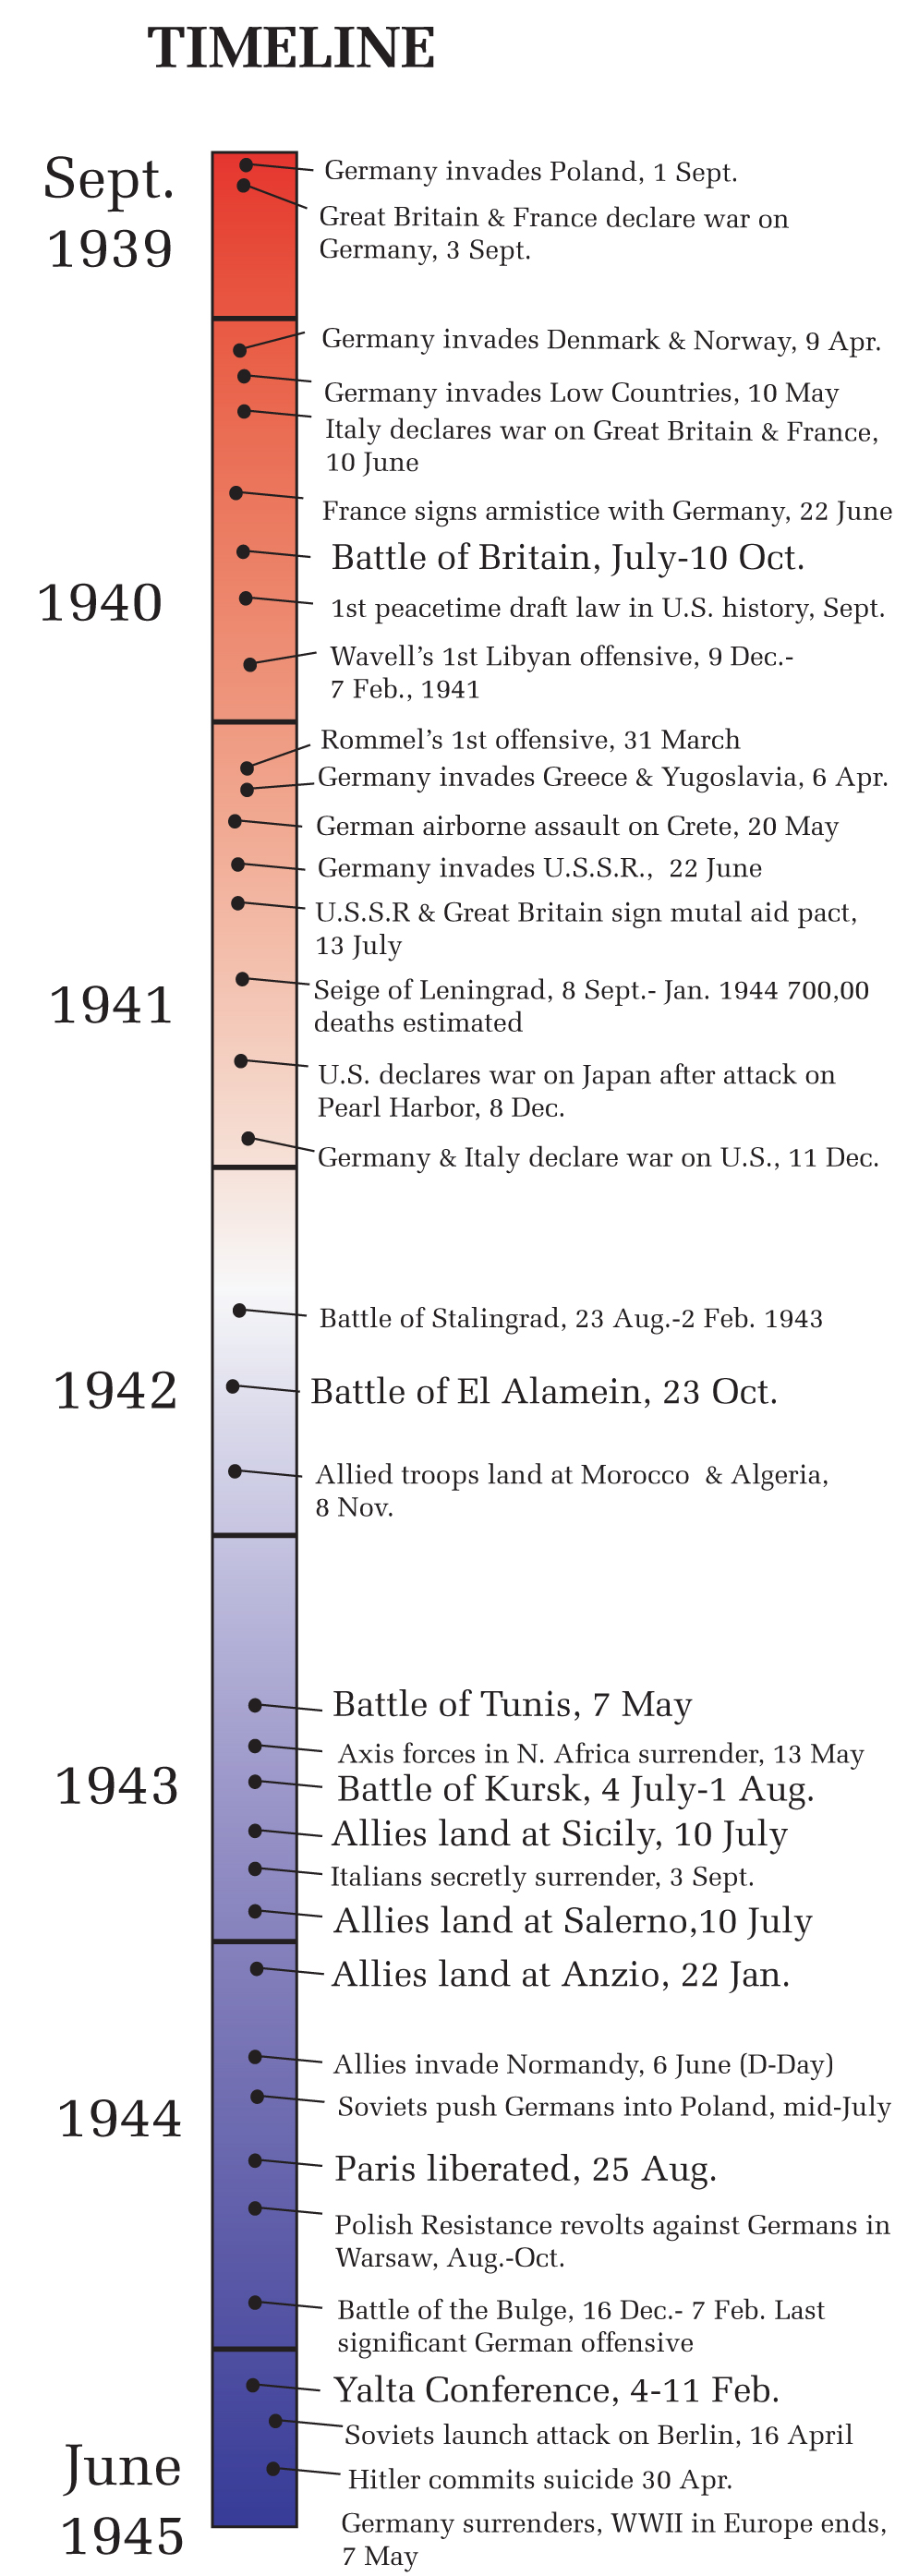 timeline of world war ii in europe history 20th century timeline of world war ii in europe history 20th century europe instagram and world war